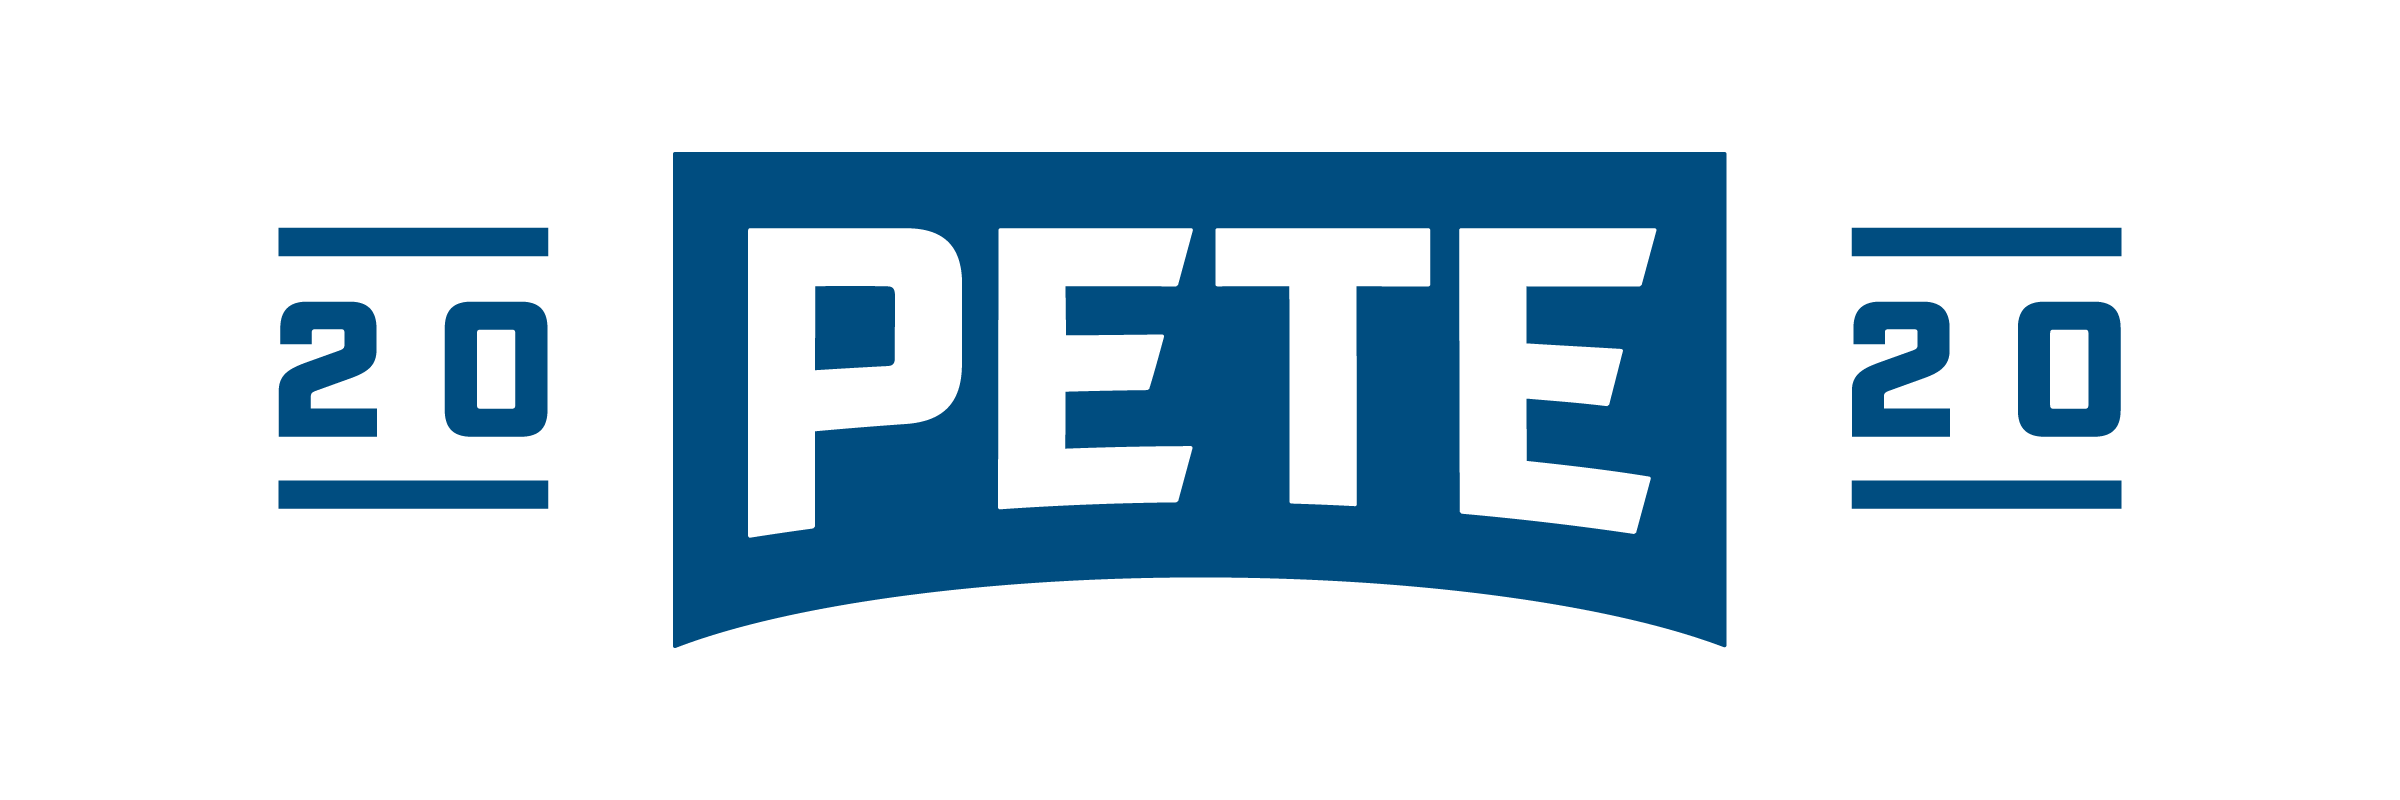 Pete for America logo